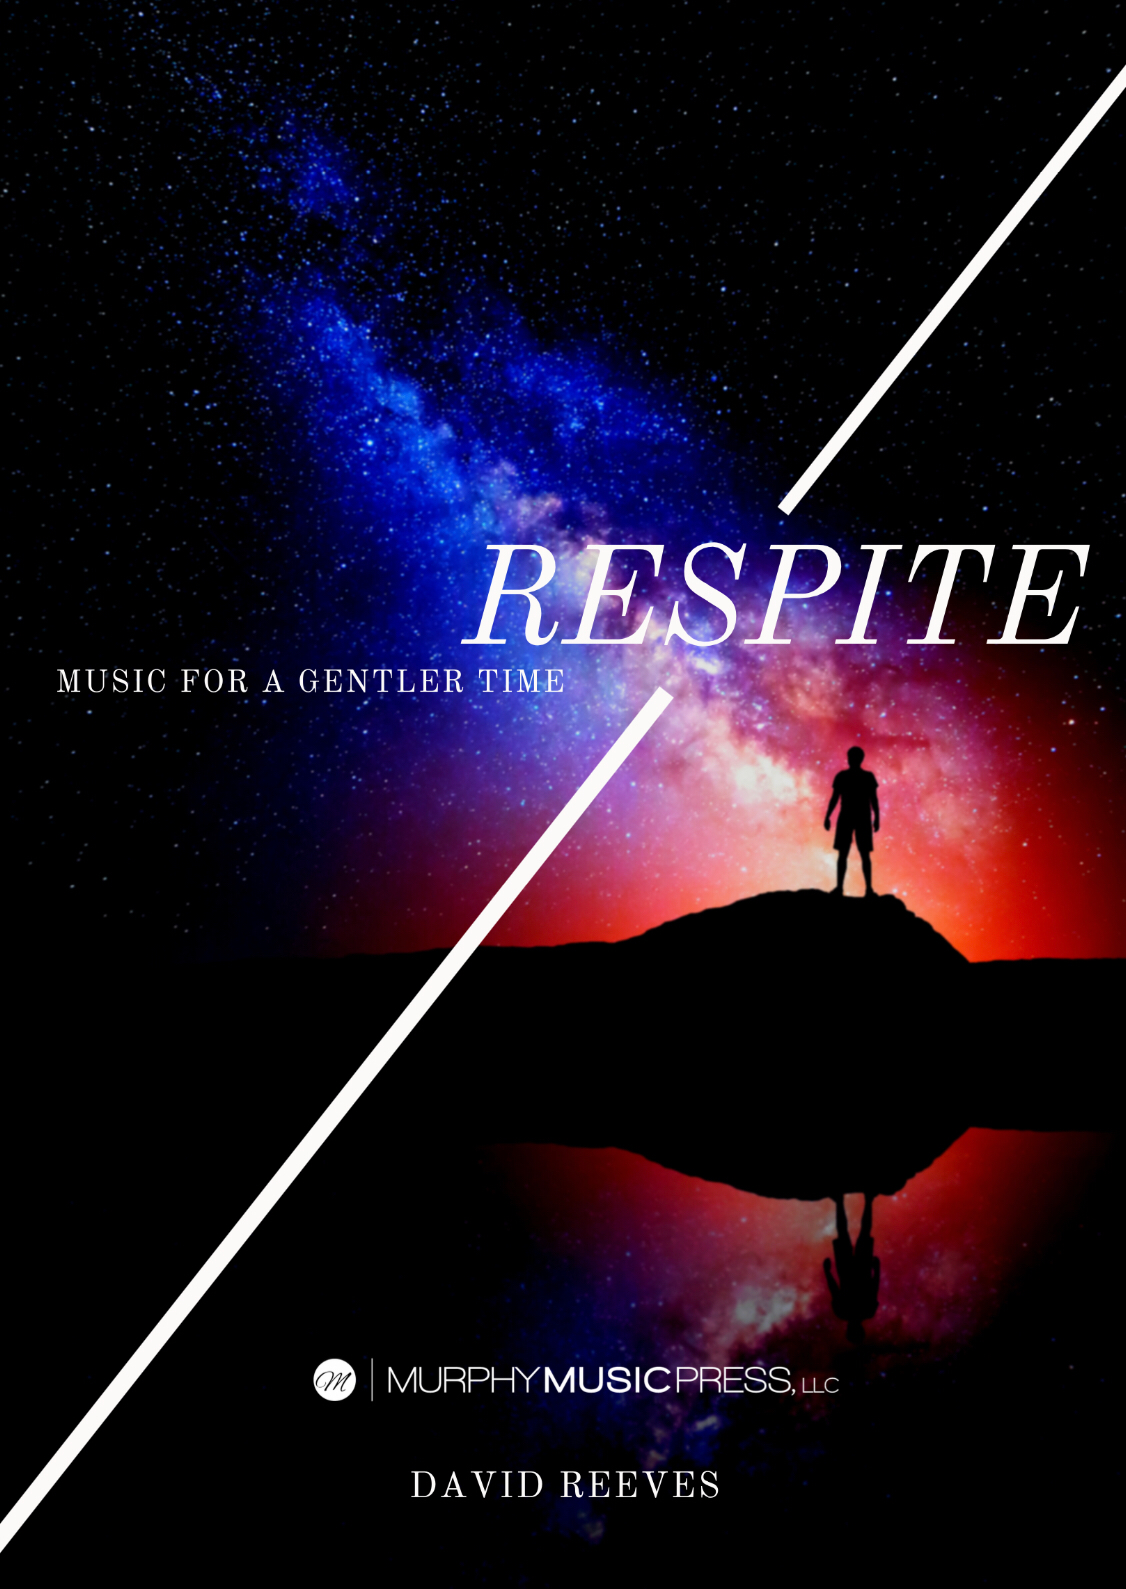 Respite by David Reeves